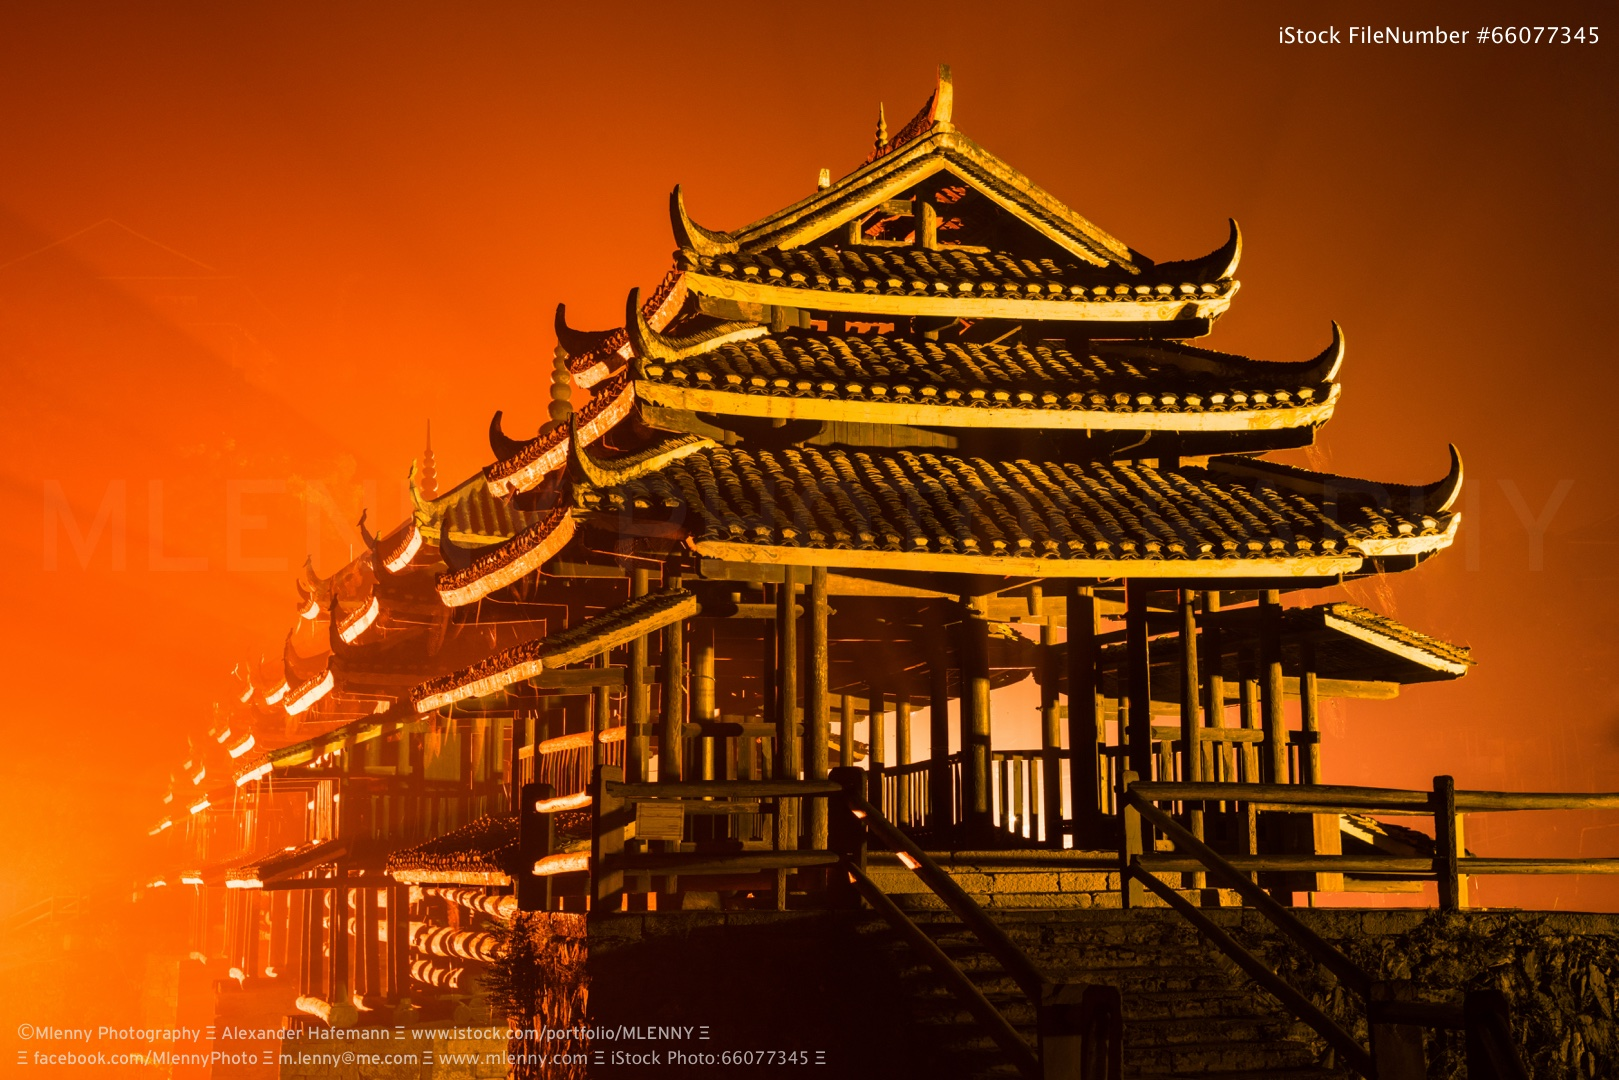 Fire in the Sky Chengyang Wind and Rain Bridge at Night, China